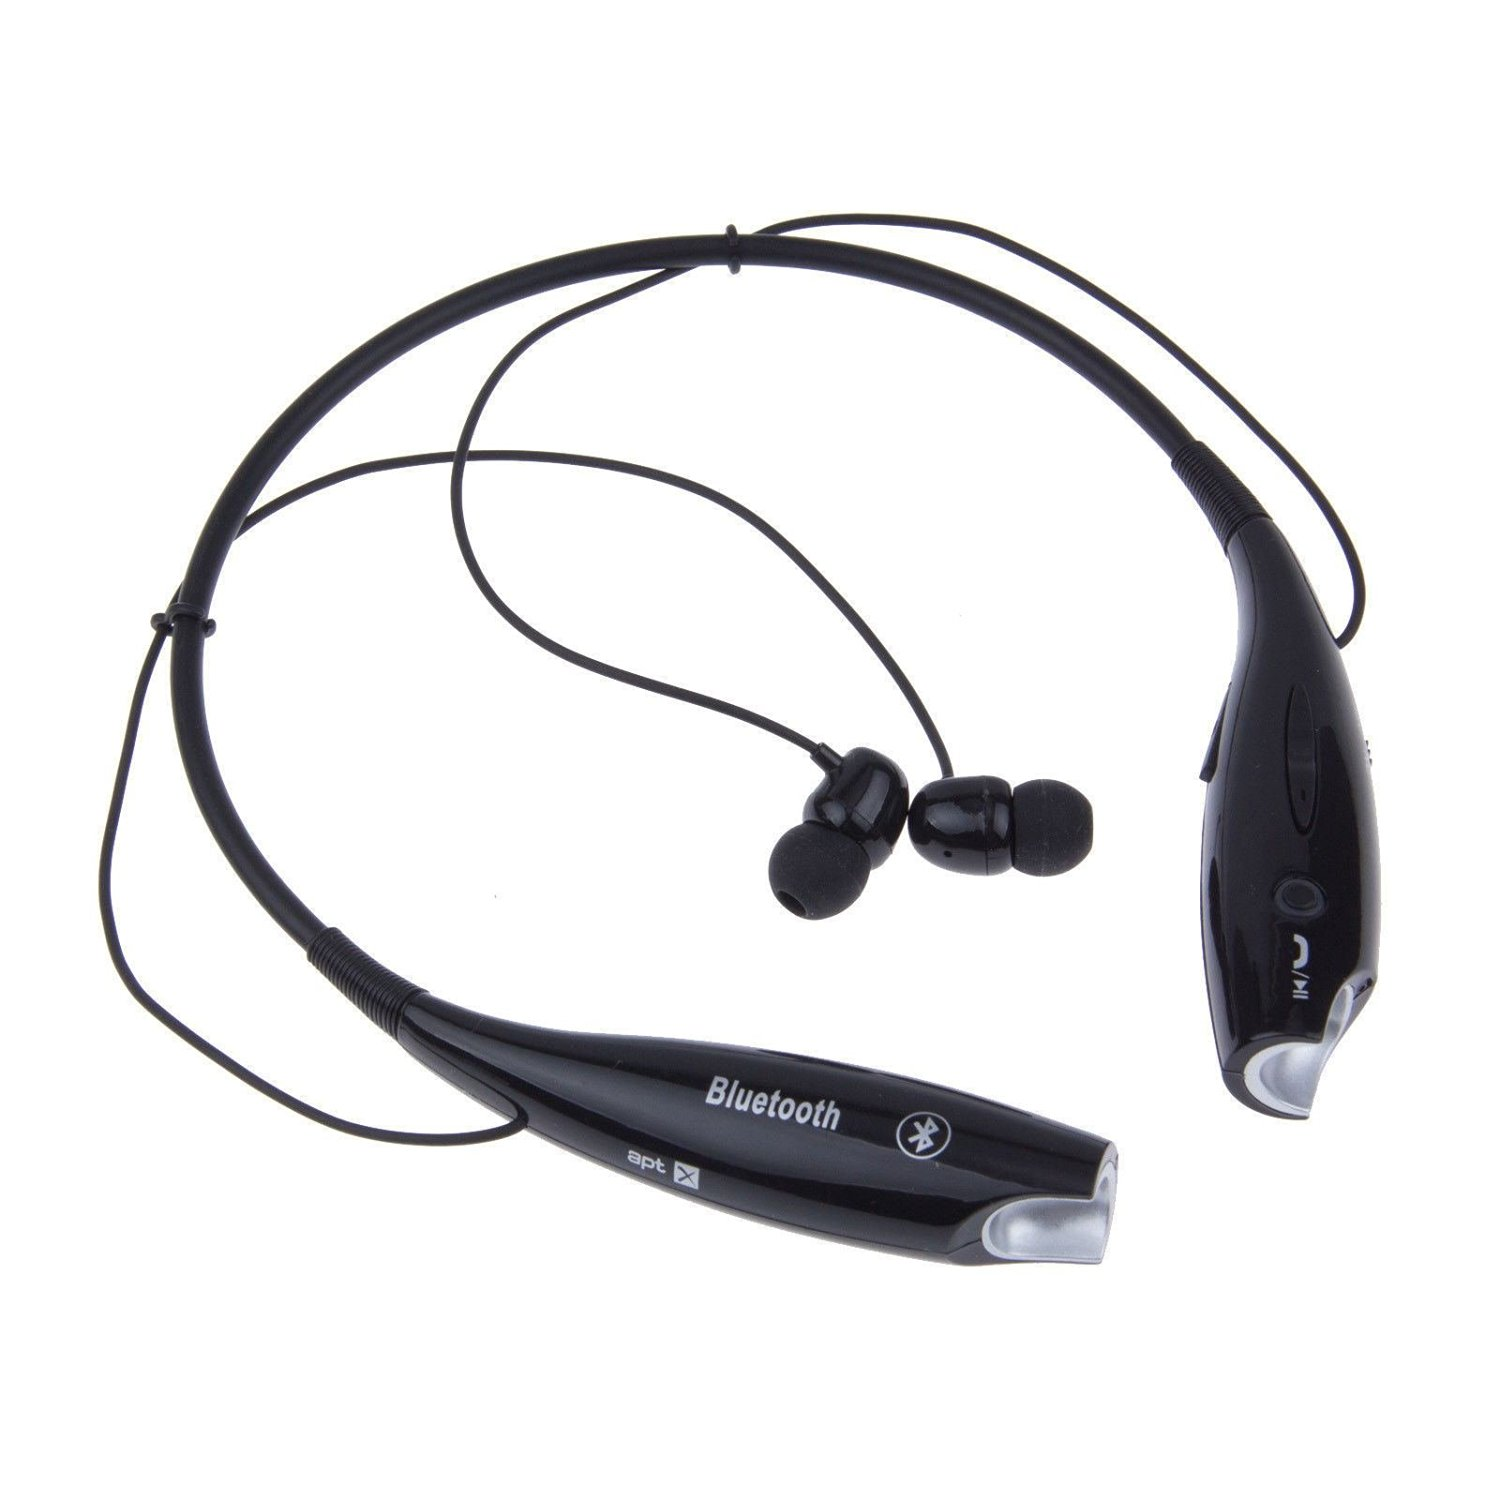 Buy Bluetooth Headphone Sport Wireless Bluetooth Handfree Sport Stereo Headset Headphone For Samsung Iphone Lg Bluetooth Earphone Black In Cheap Price On Alibaba Com